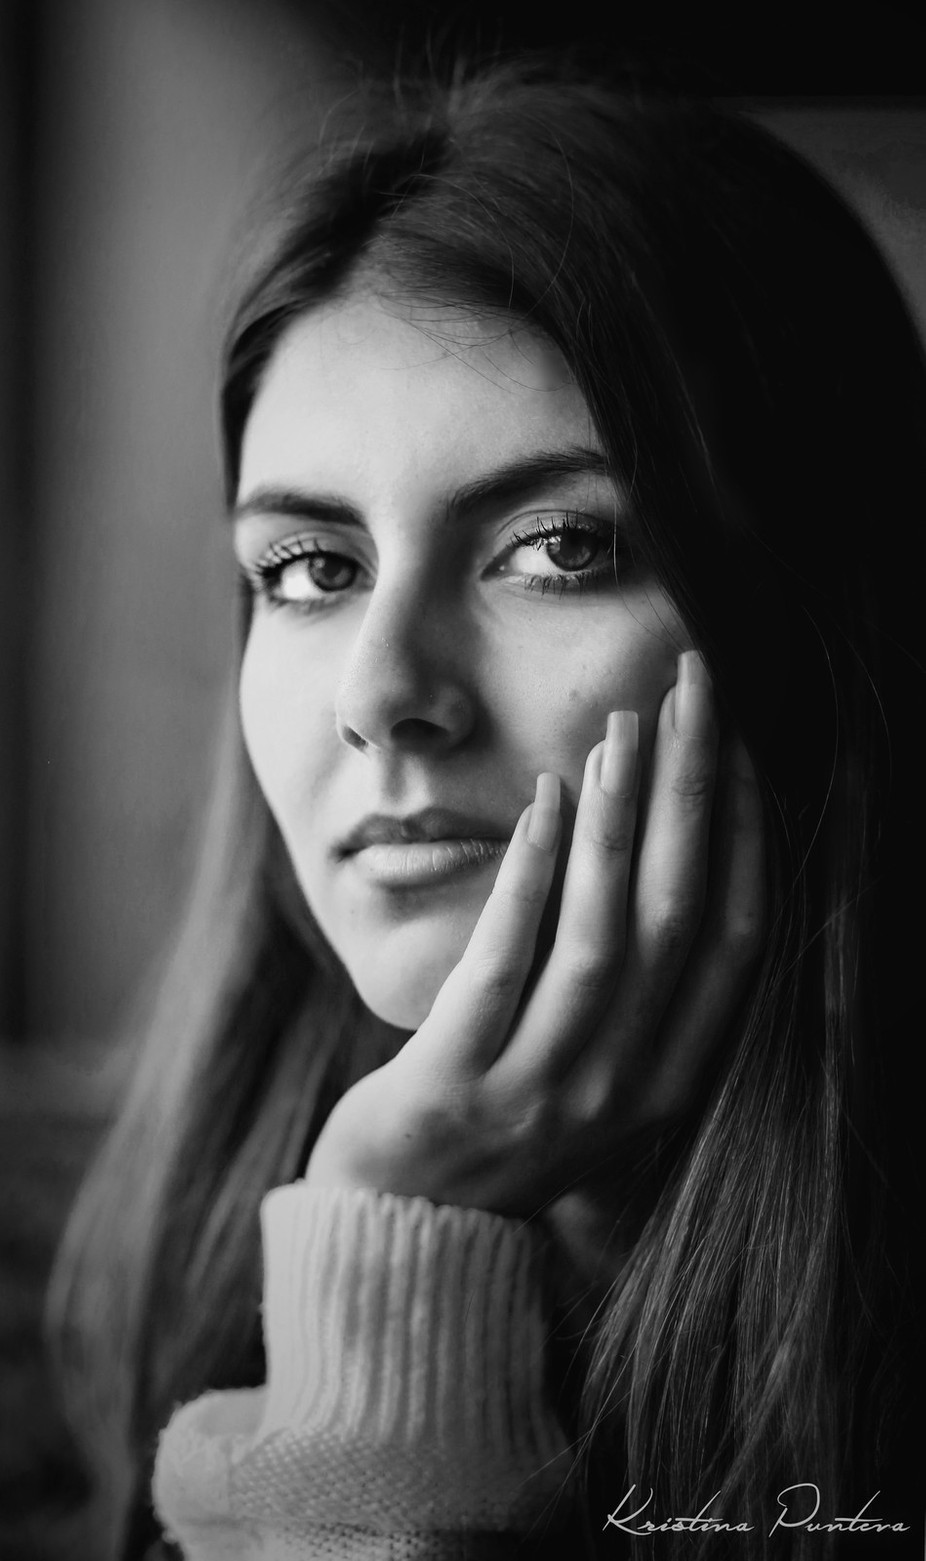 Let The Eyes Speak (B&W) by kkristinang - Black And White Female Portraits Photo Contest